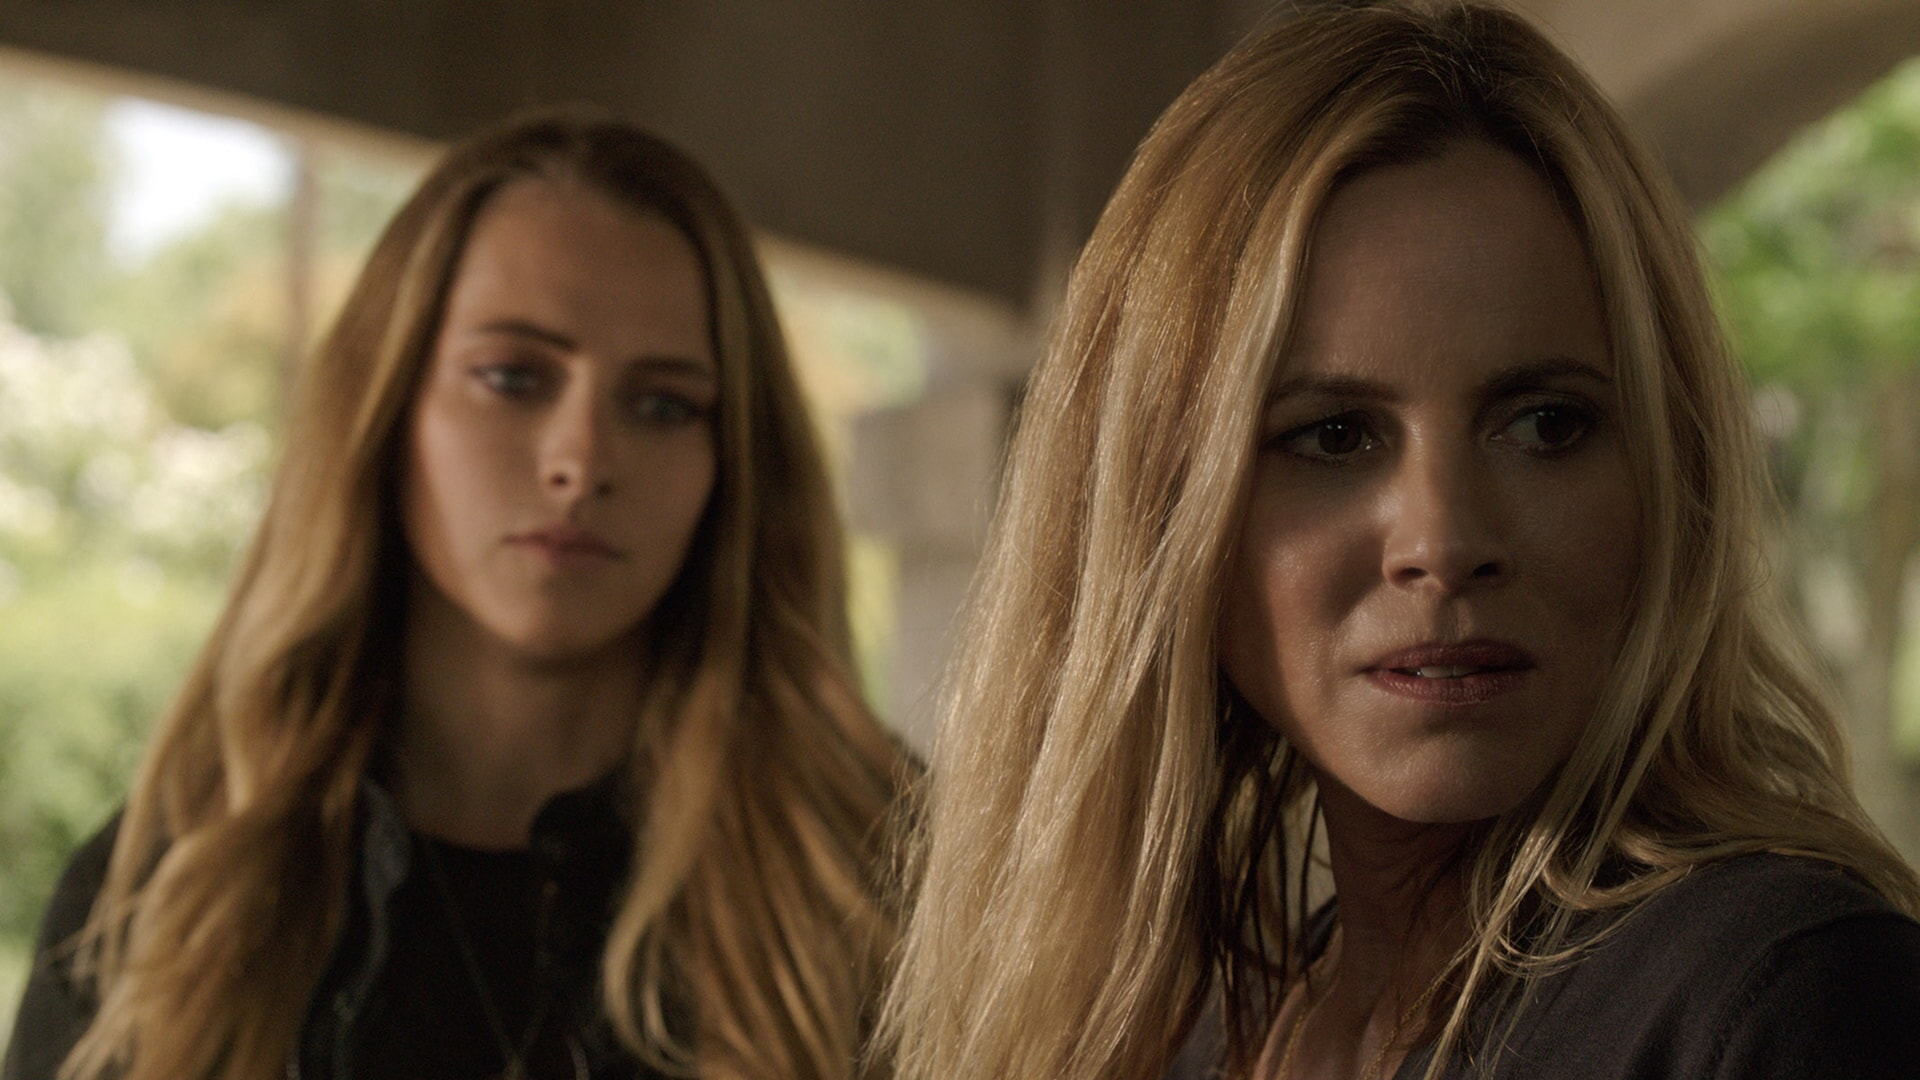 TERESA PALMER as Rebecca and MARIA BELLO as Sophie